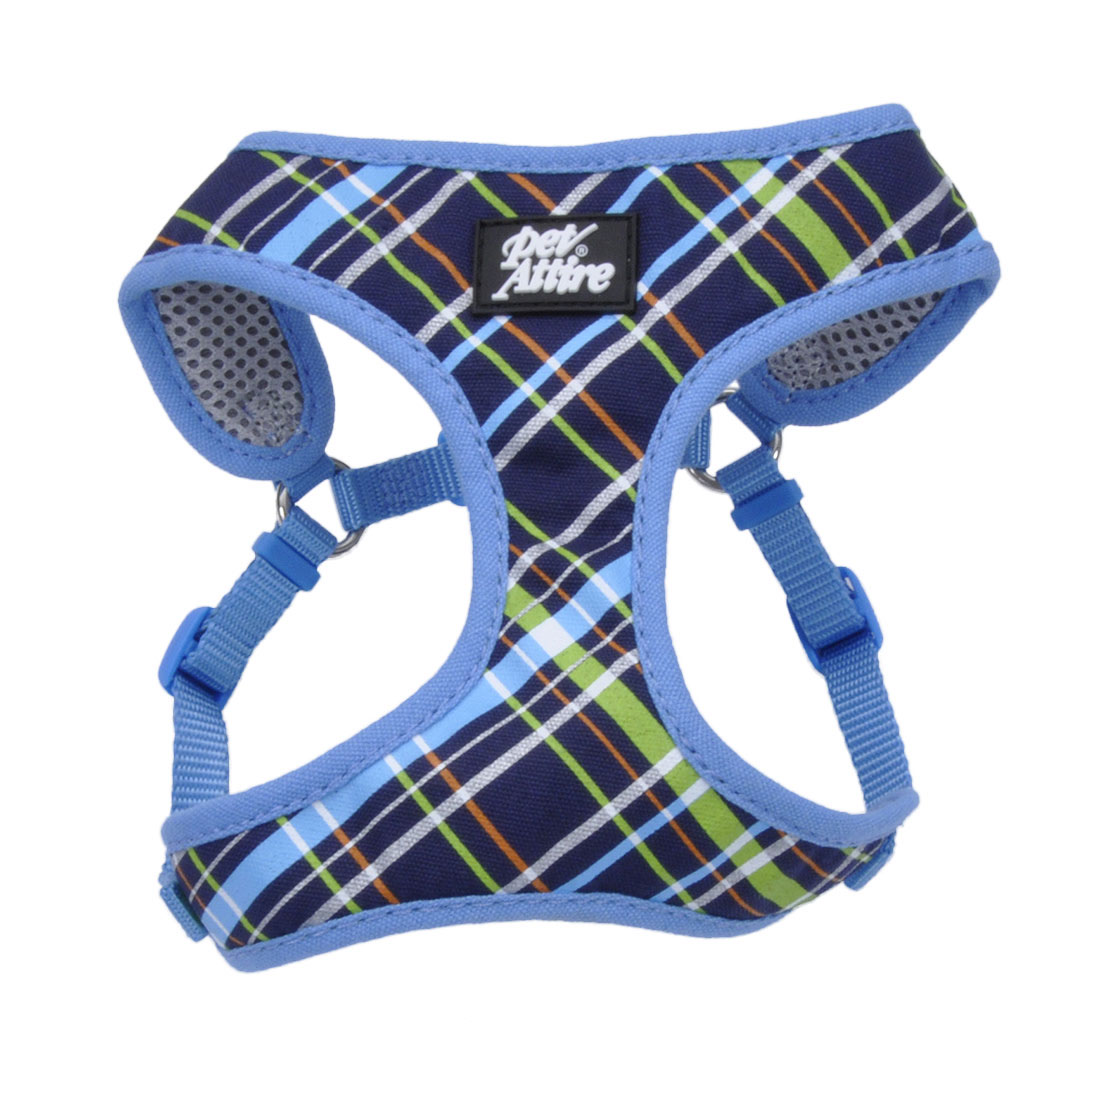 Ribbon Designer Wrap Adjustable Dog Harness, Navy Blue Plaid, 3/8-in x 14-in-16-in